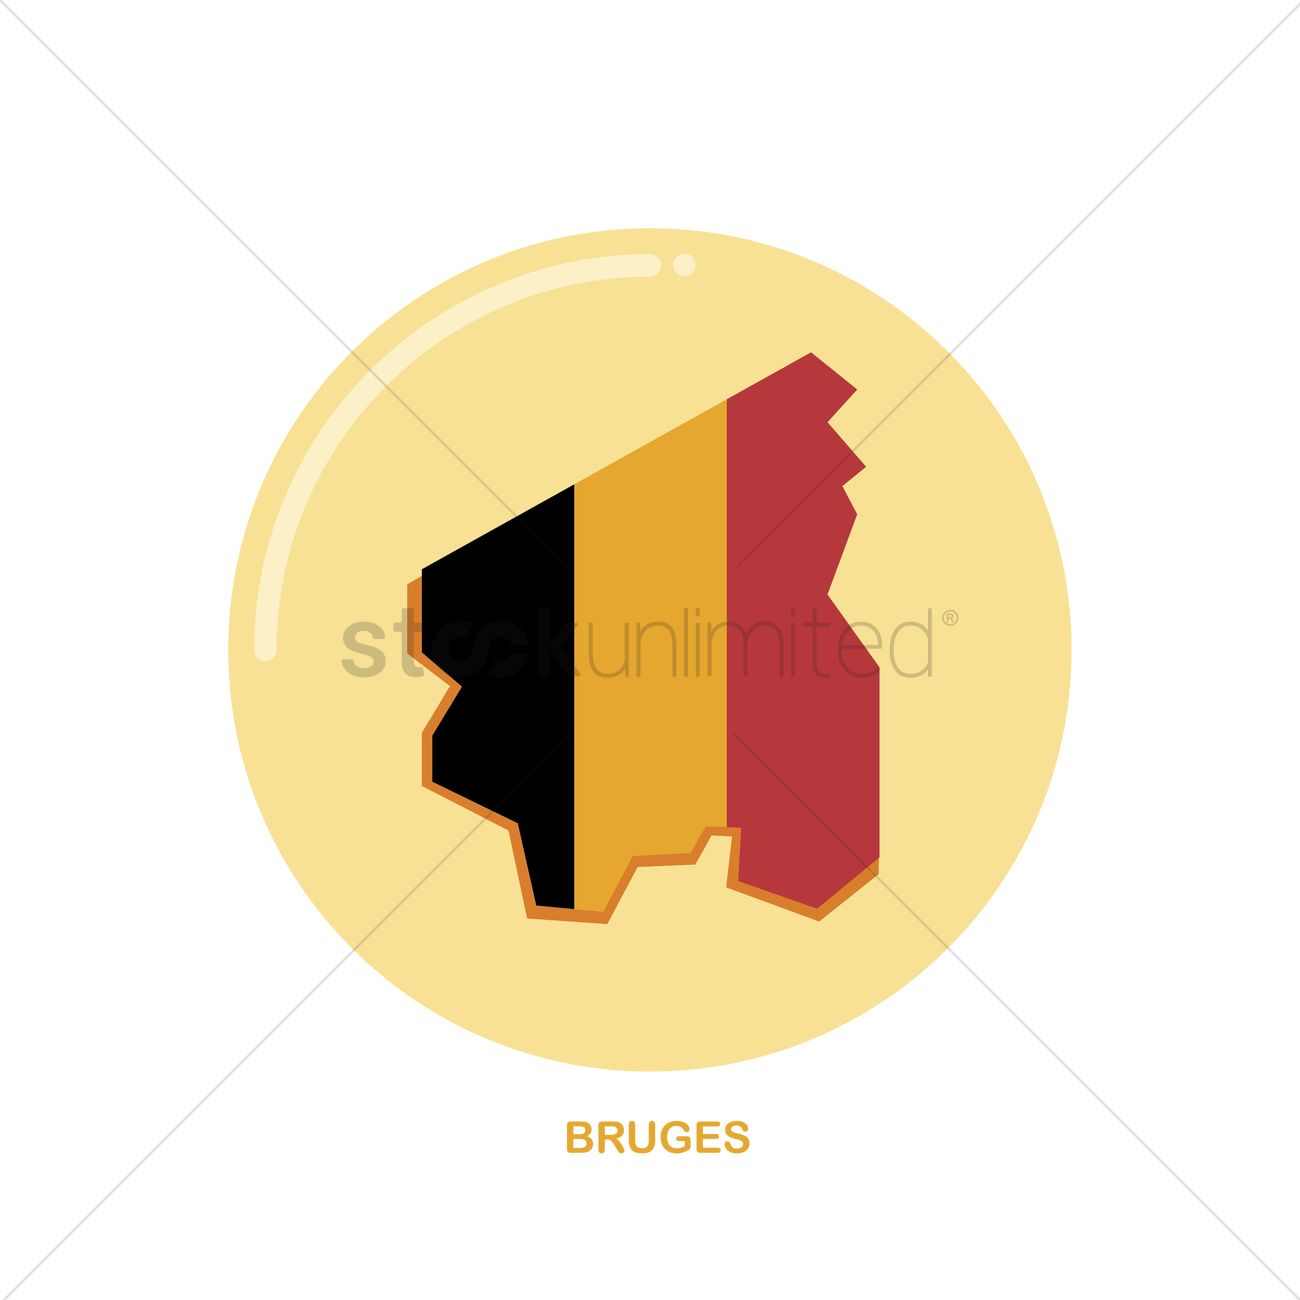 Bruges map icon Vector Image - 1581400 | StockUnlimited